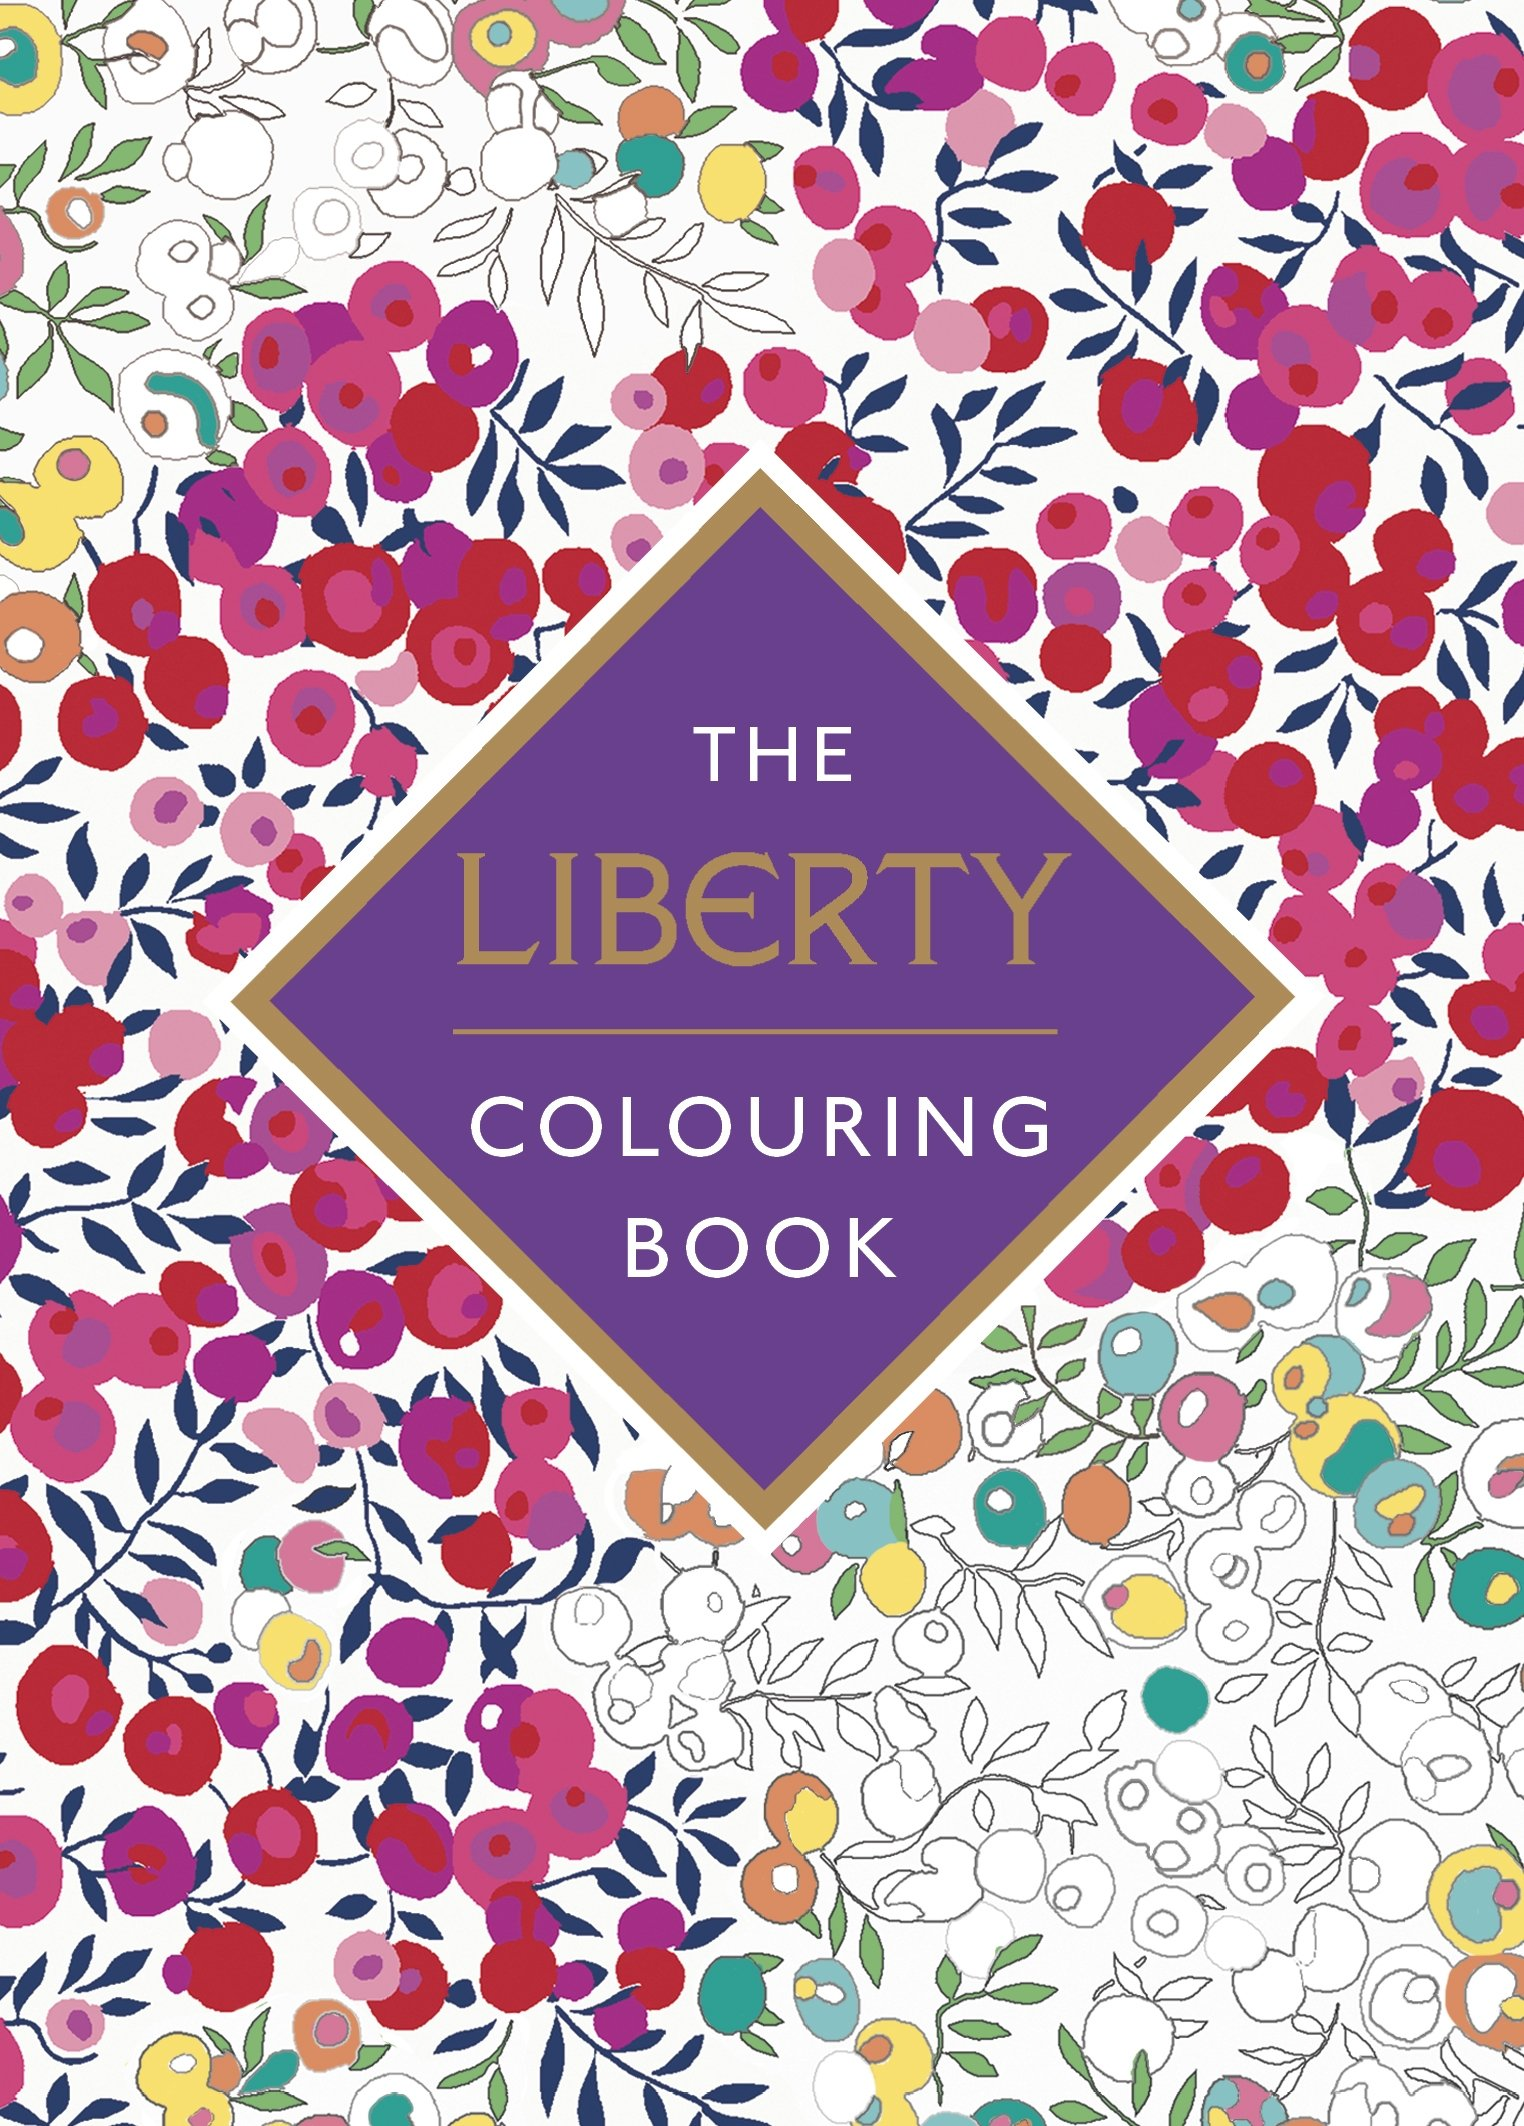 The Liberty Colouring Book NA 9780241249987 Amazon Books